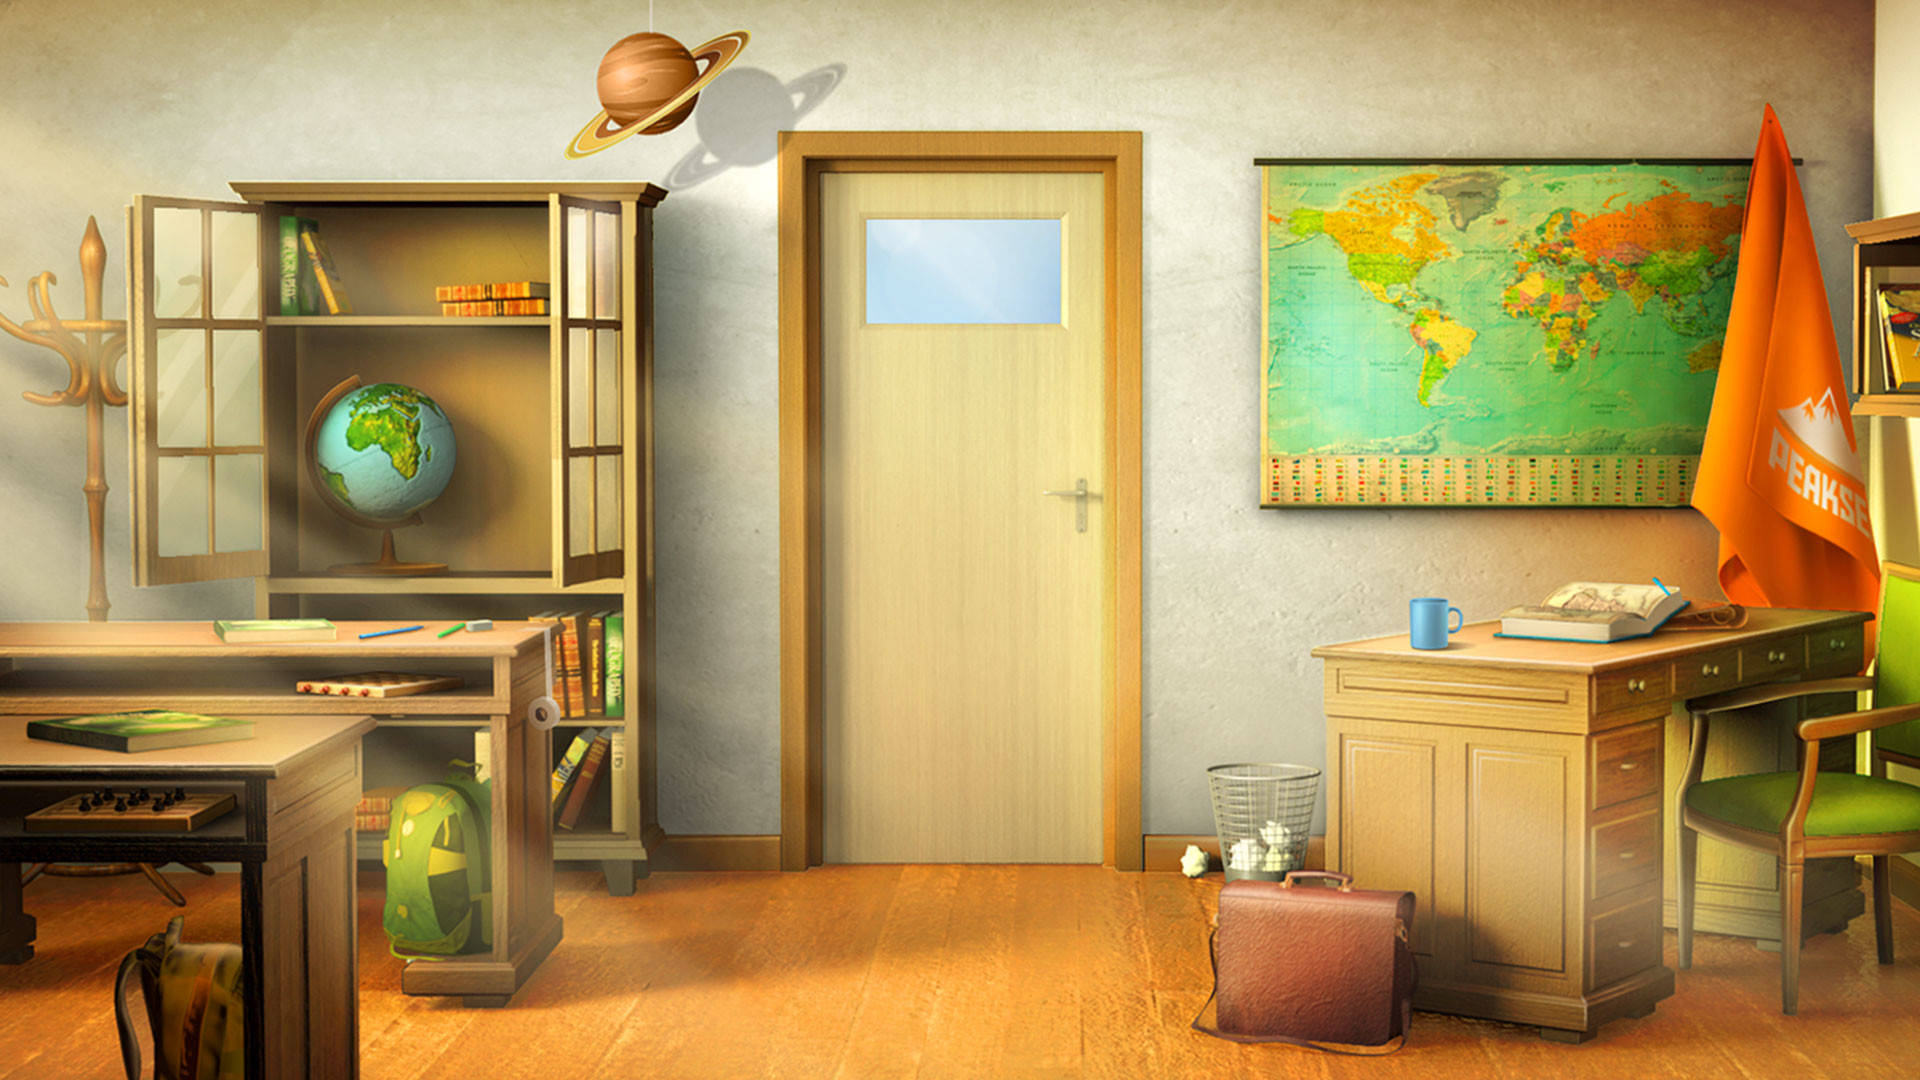 100 Doors Game Escape From School On Steam